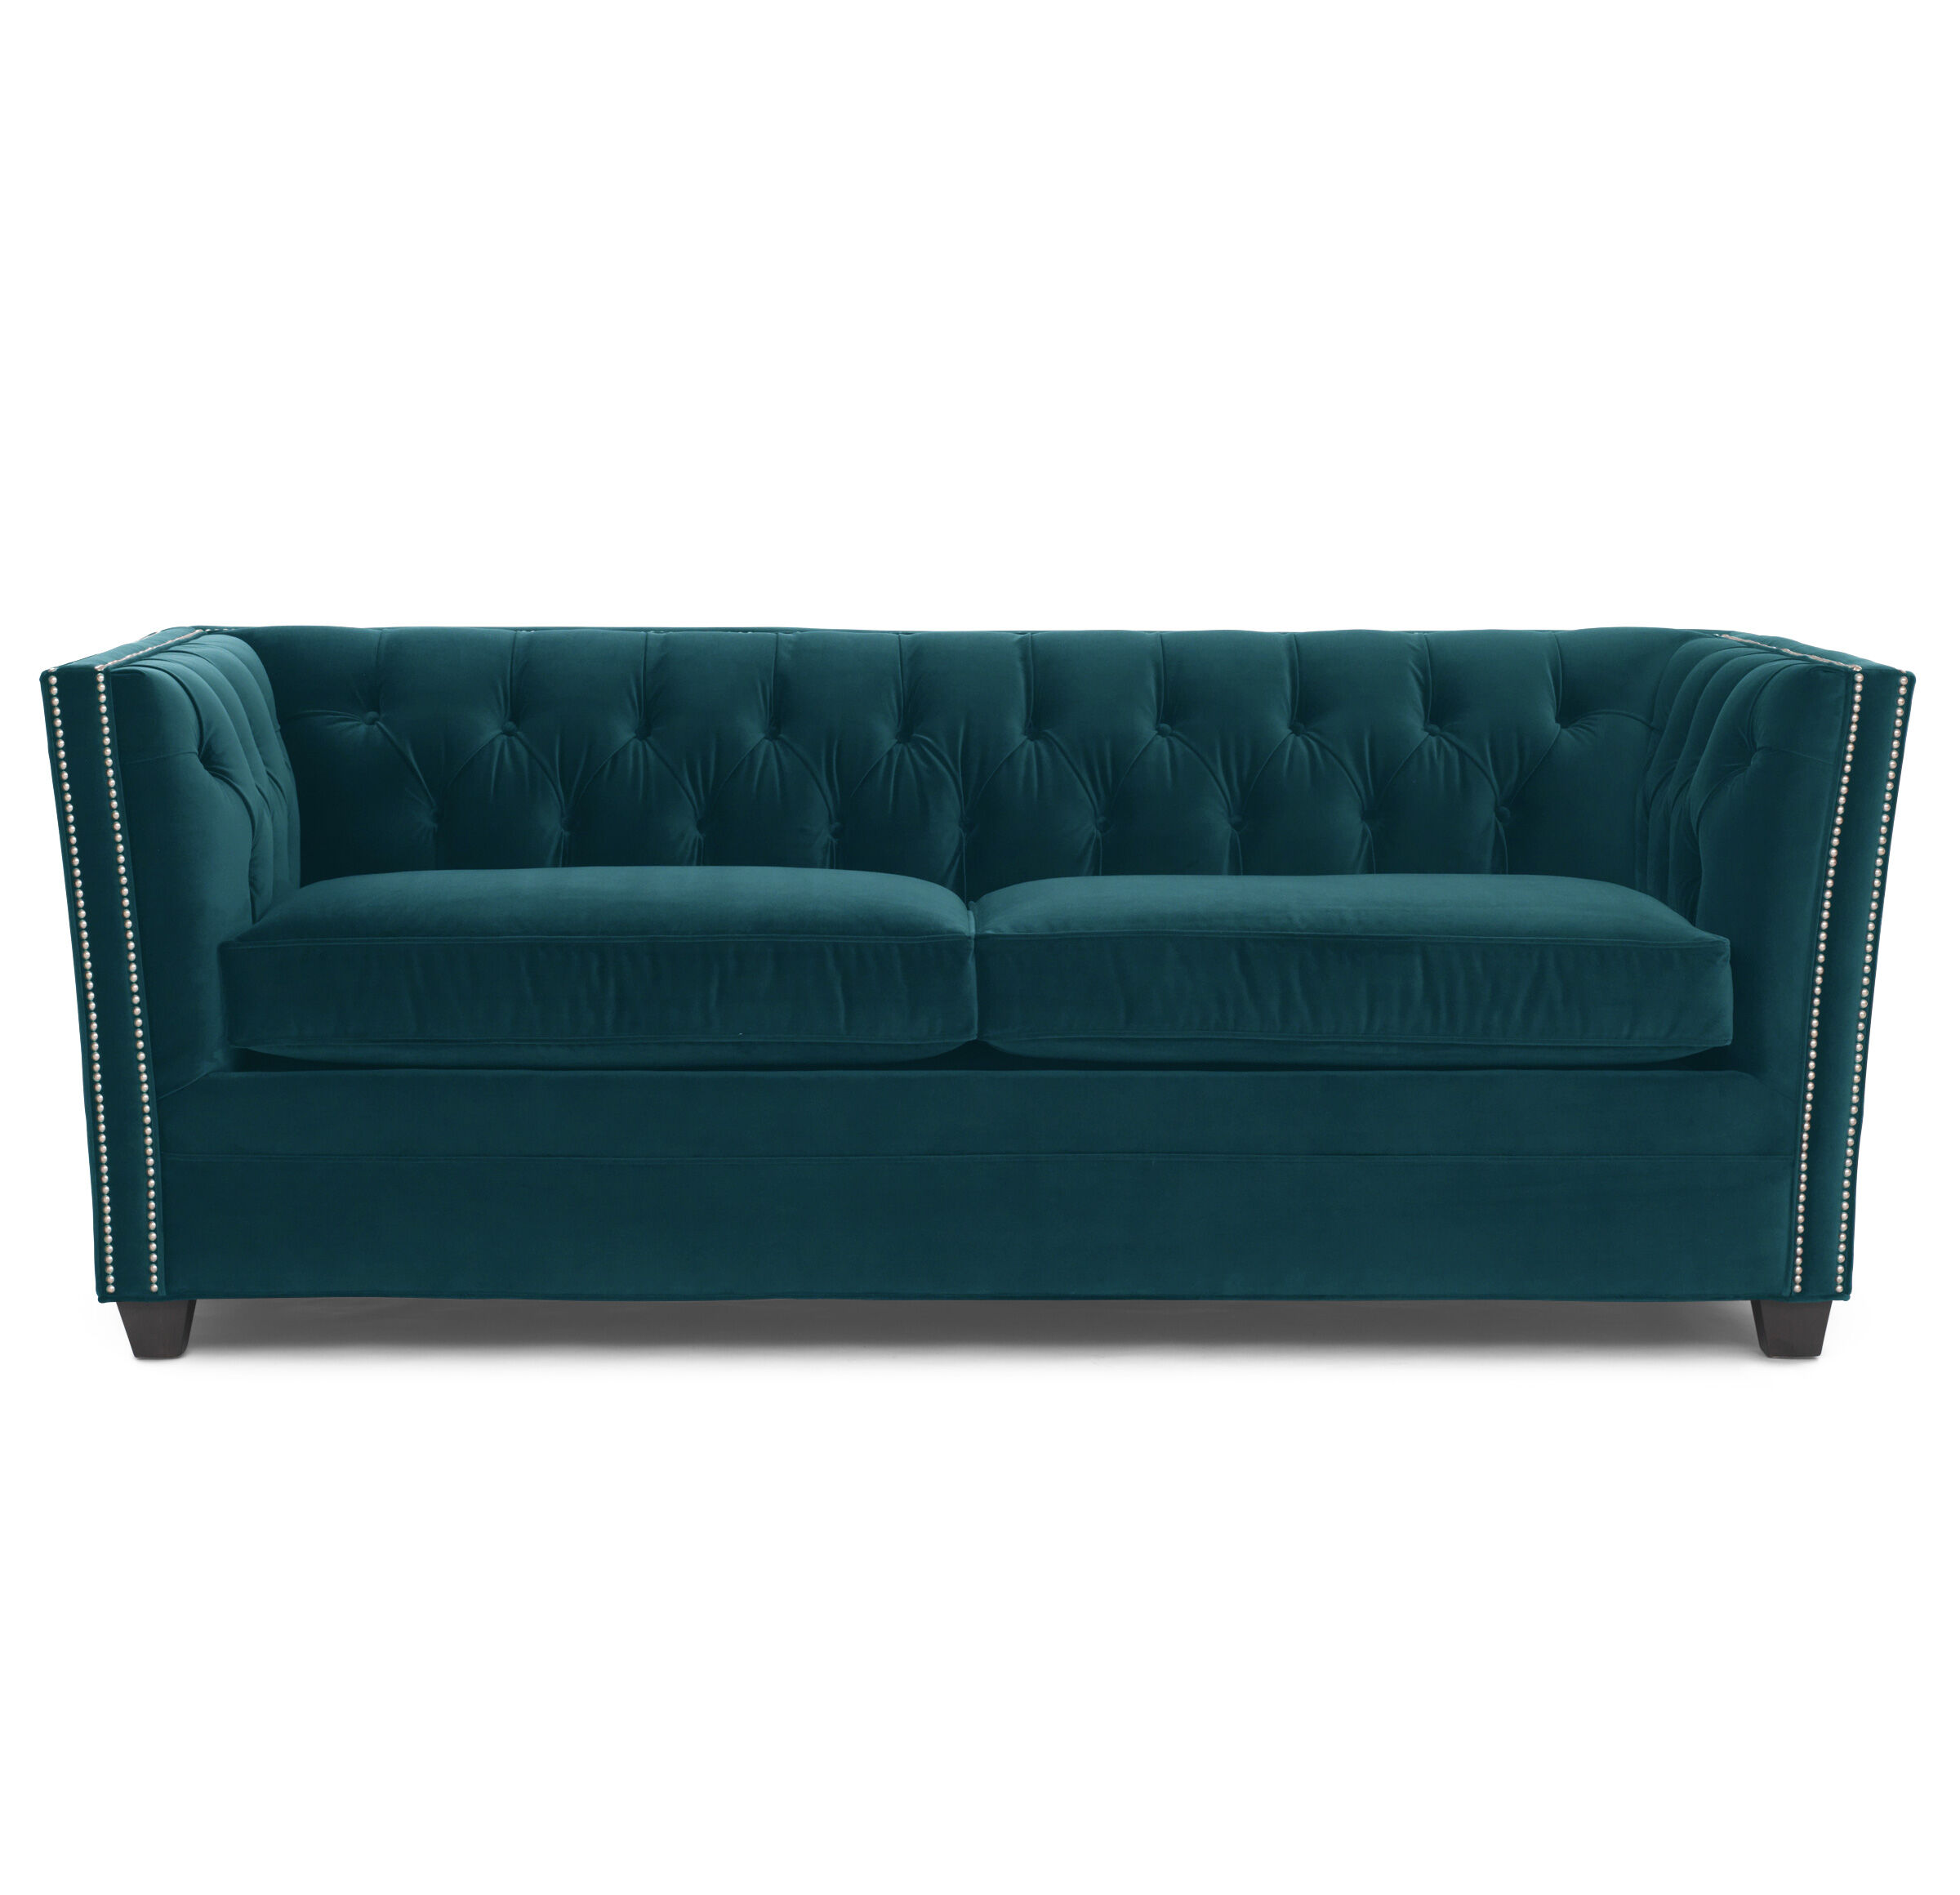 luxe 2 seat sofa slipcover holly golightly sleeper sofas fiona super queen